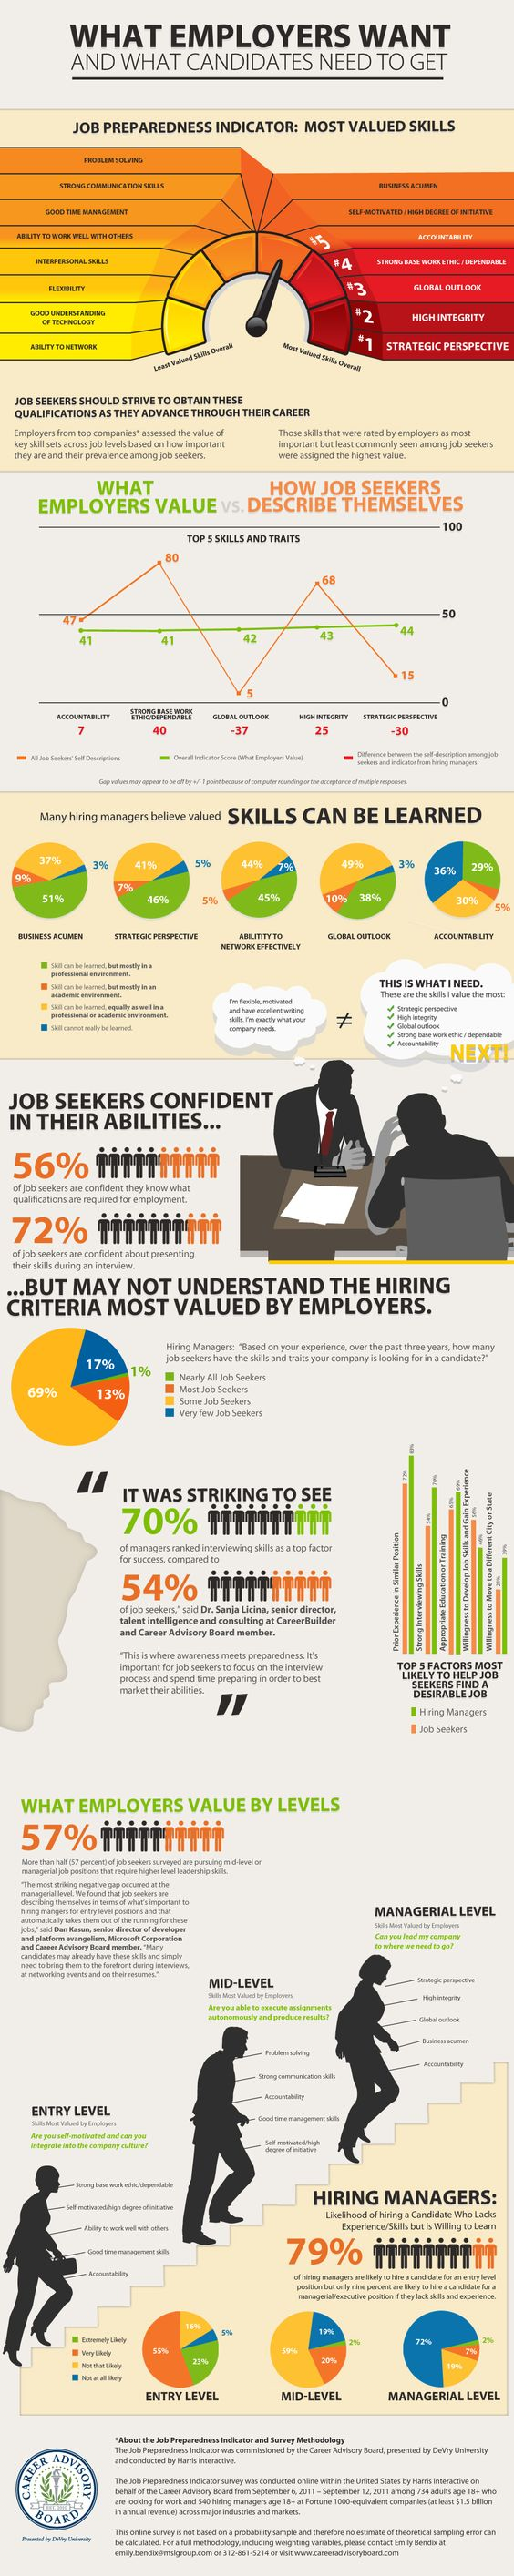 skills employers want to see on a resumes